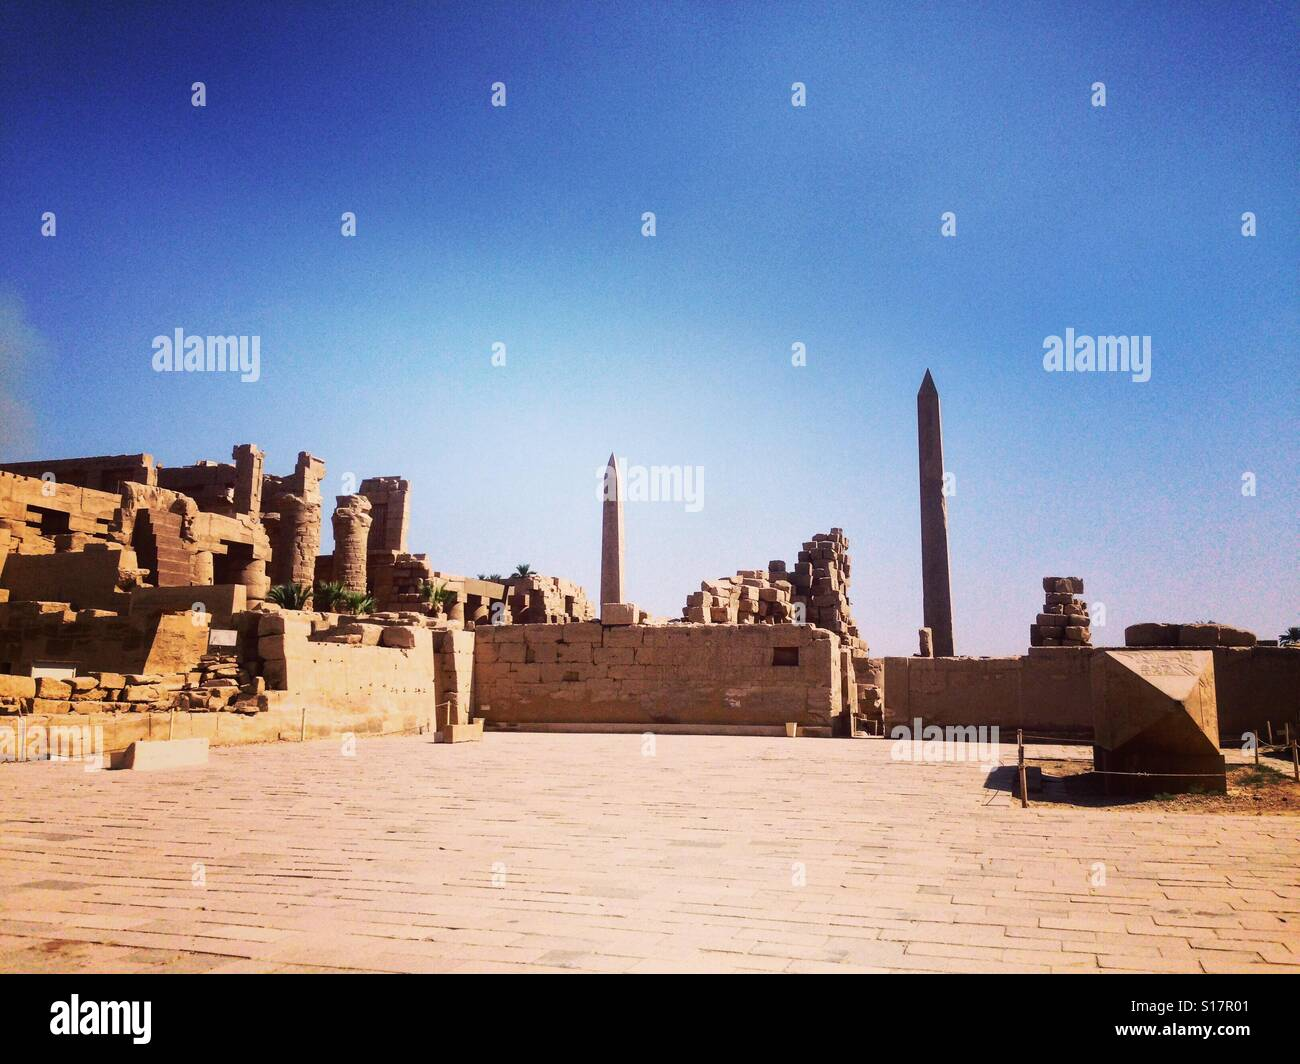 Backside of the Karnak temple, Luxor, Egypt - Stock Image